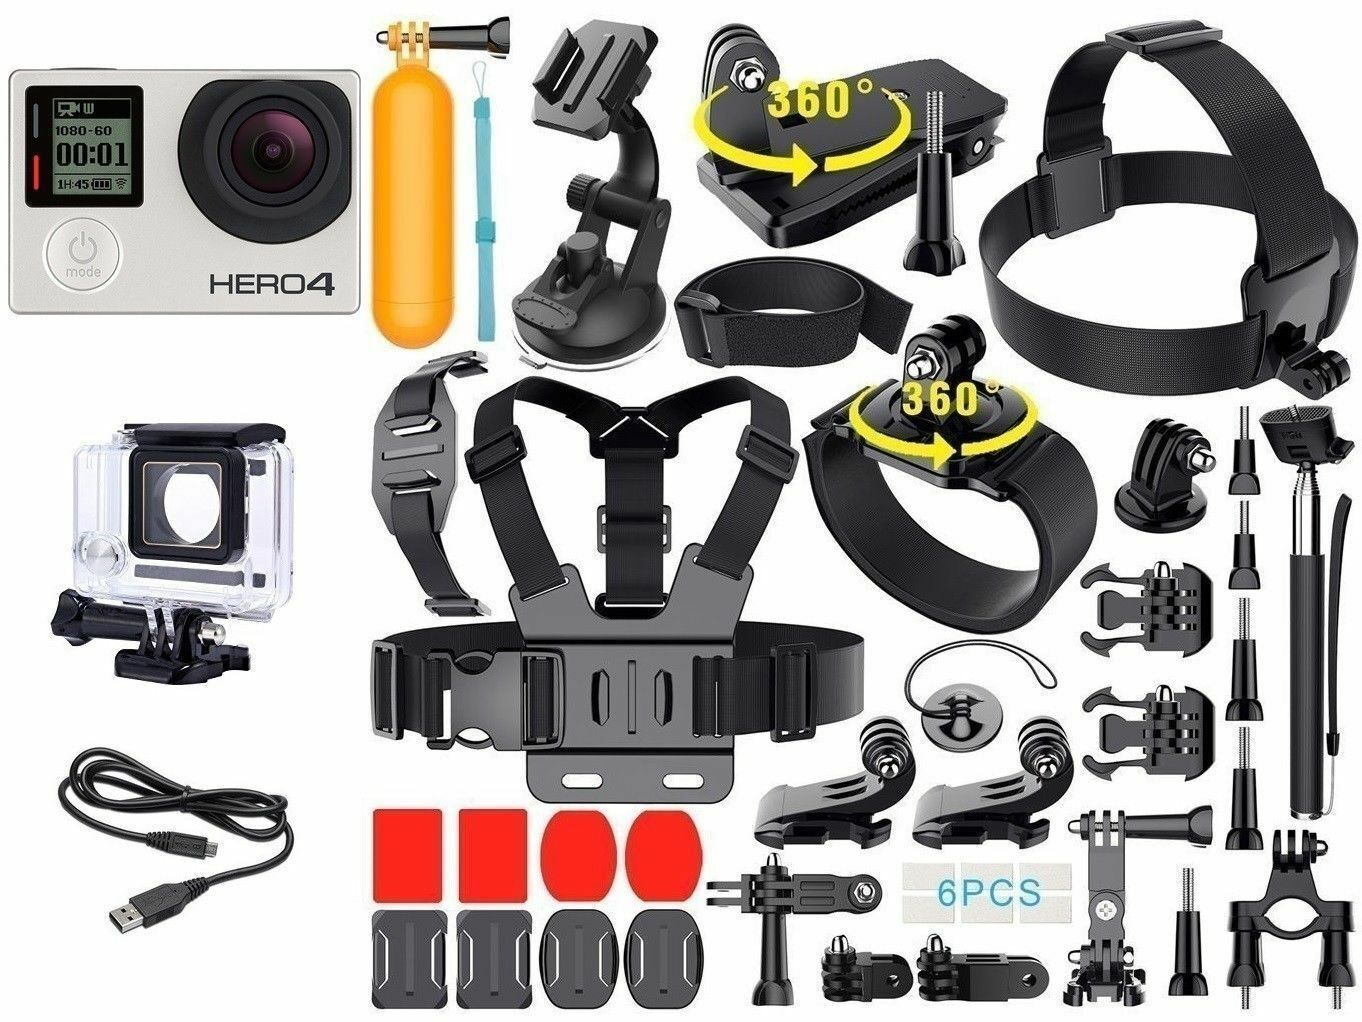 GoPro Hero 4 Silver Edition Camcorder CHDHY-401 With Touch Screen + 40 Pieces